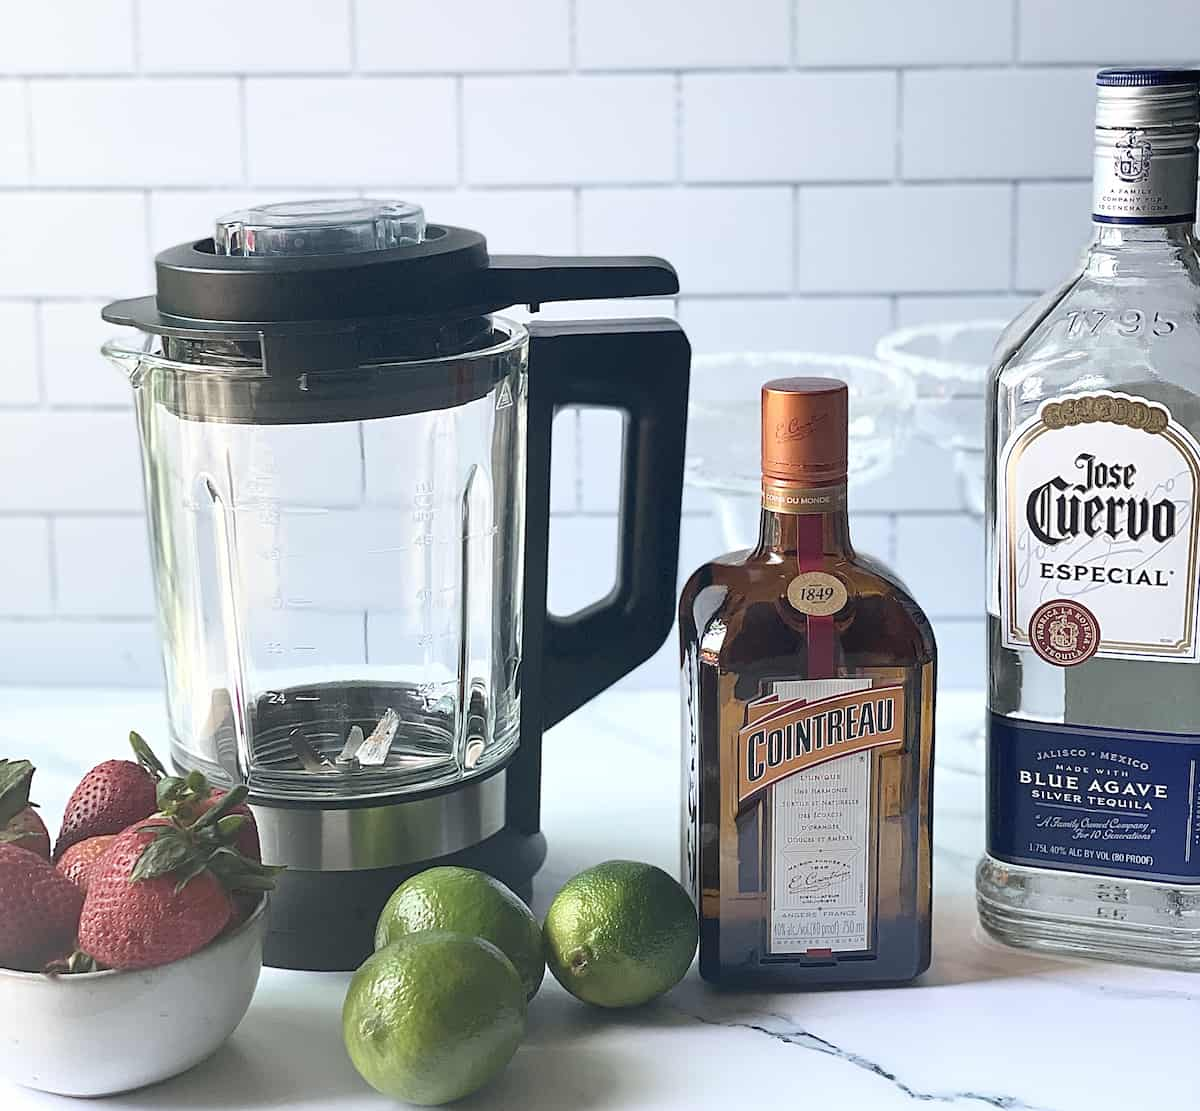 cointreau, tequila, limes, strawberries, and a blender